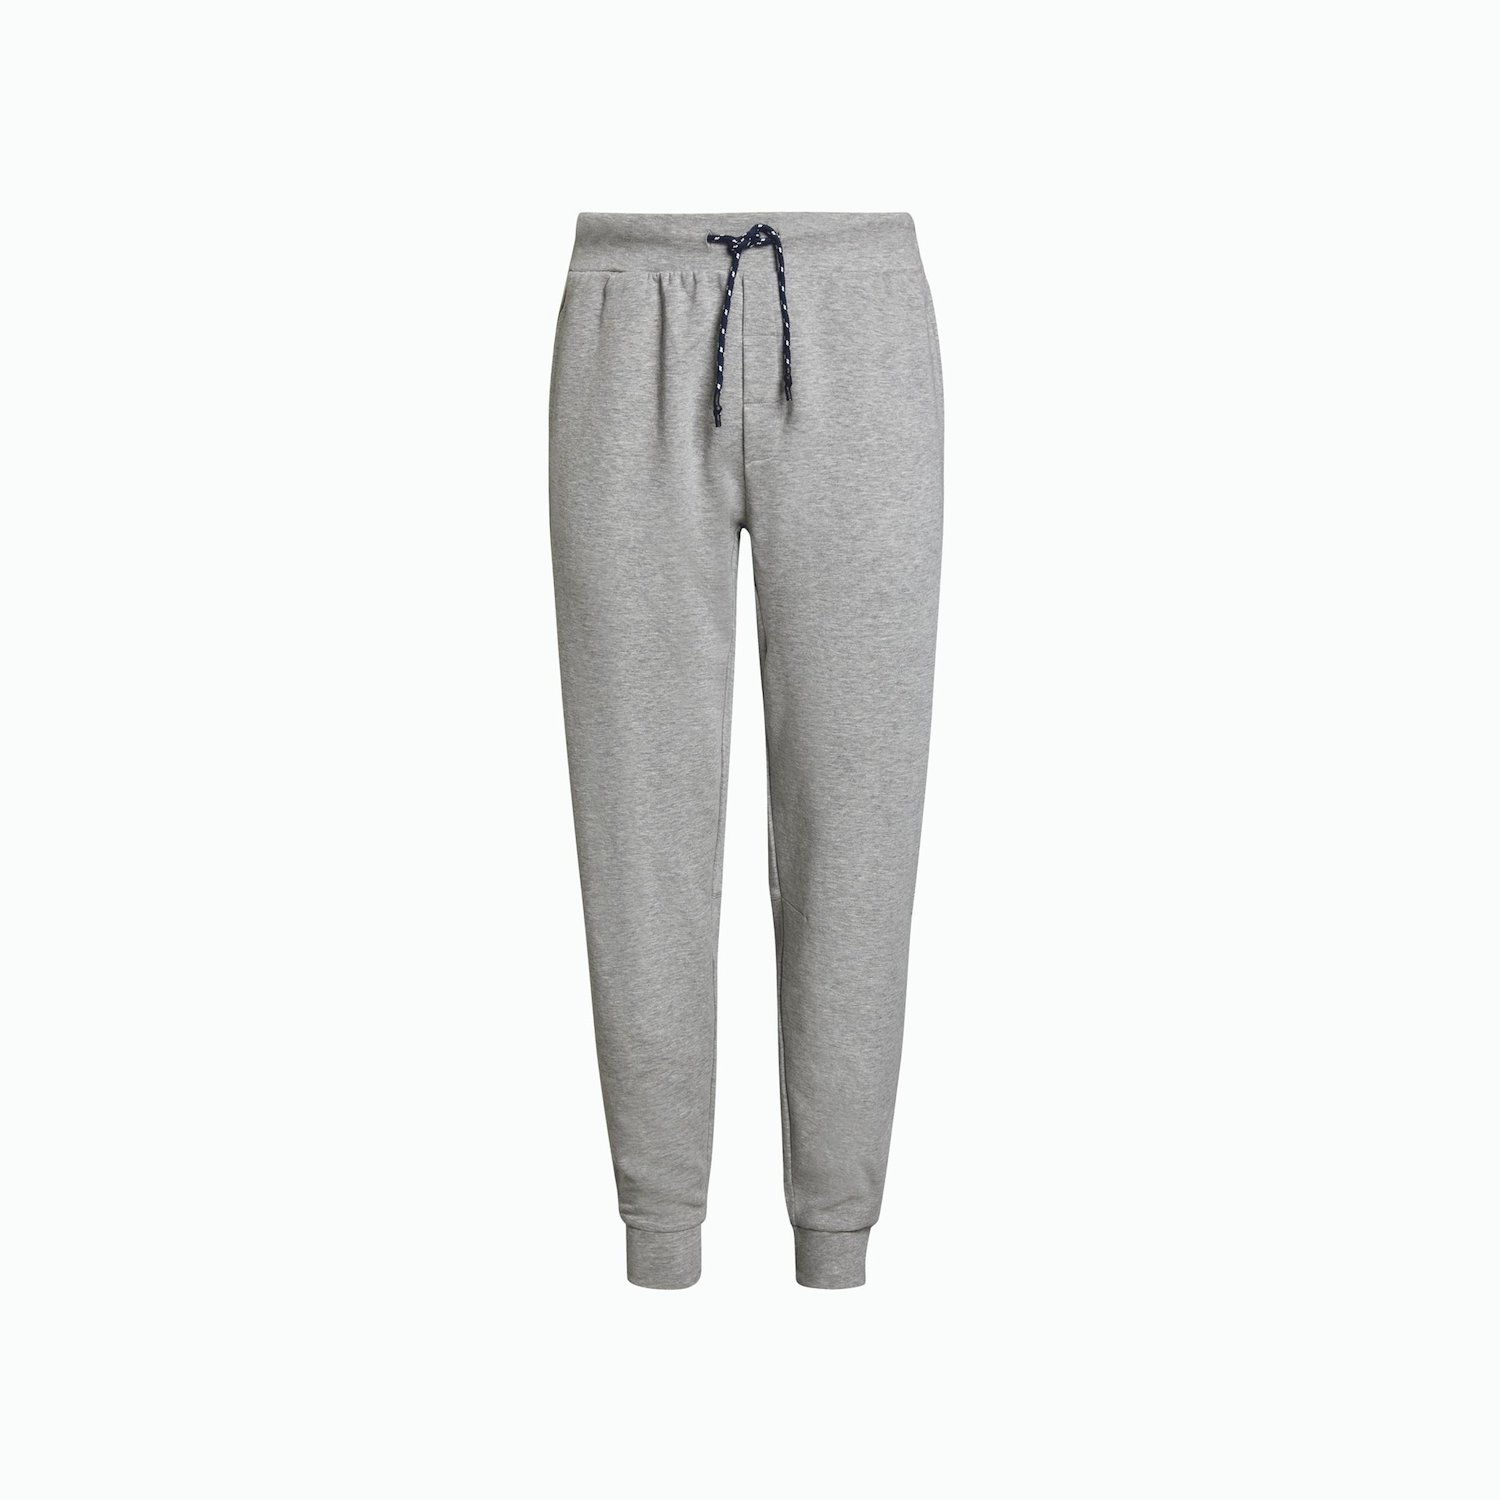 Sweatpants A38 - Light Grey Melange